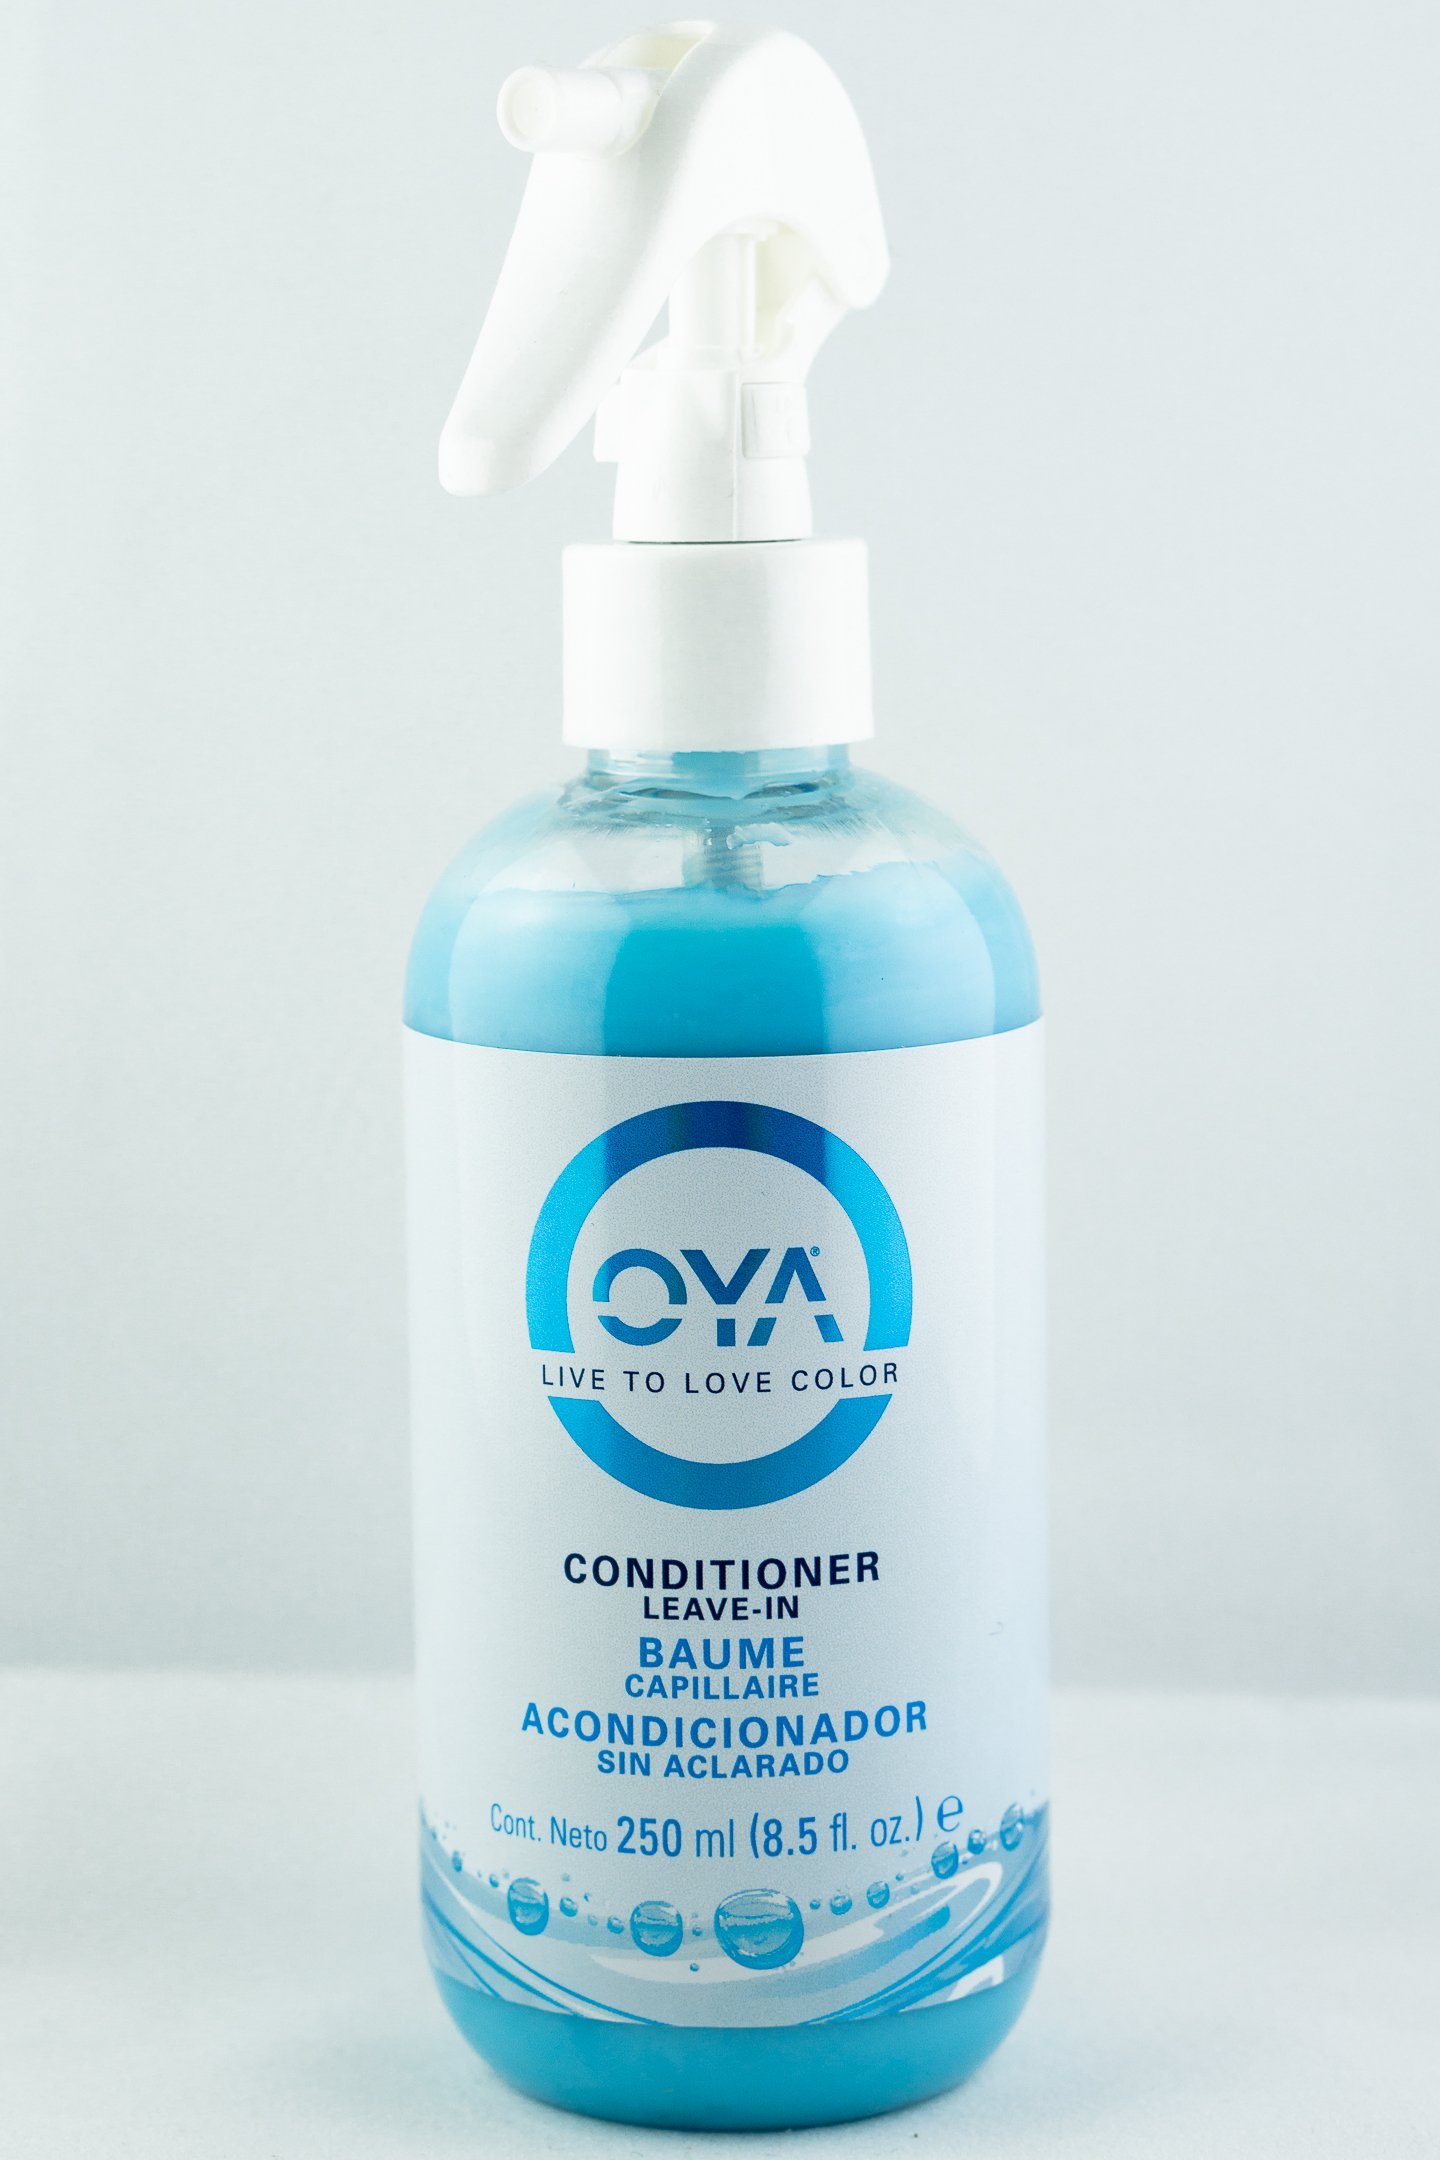 OYA Leave-In Conditioner | Studio Trio Hair Salon